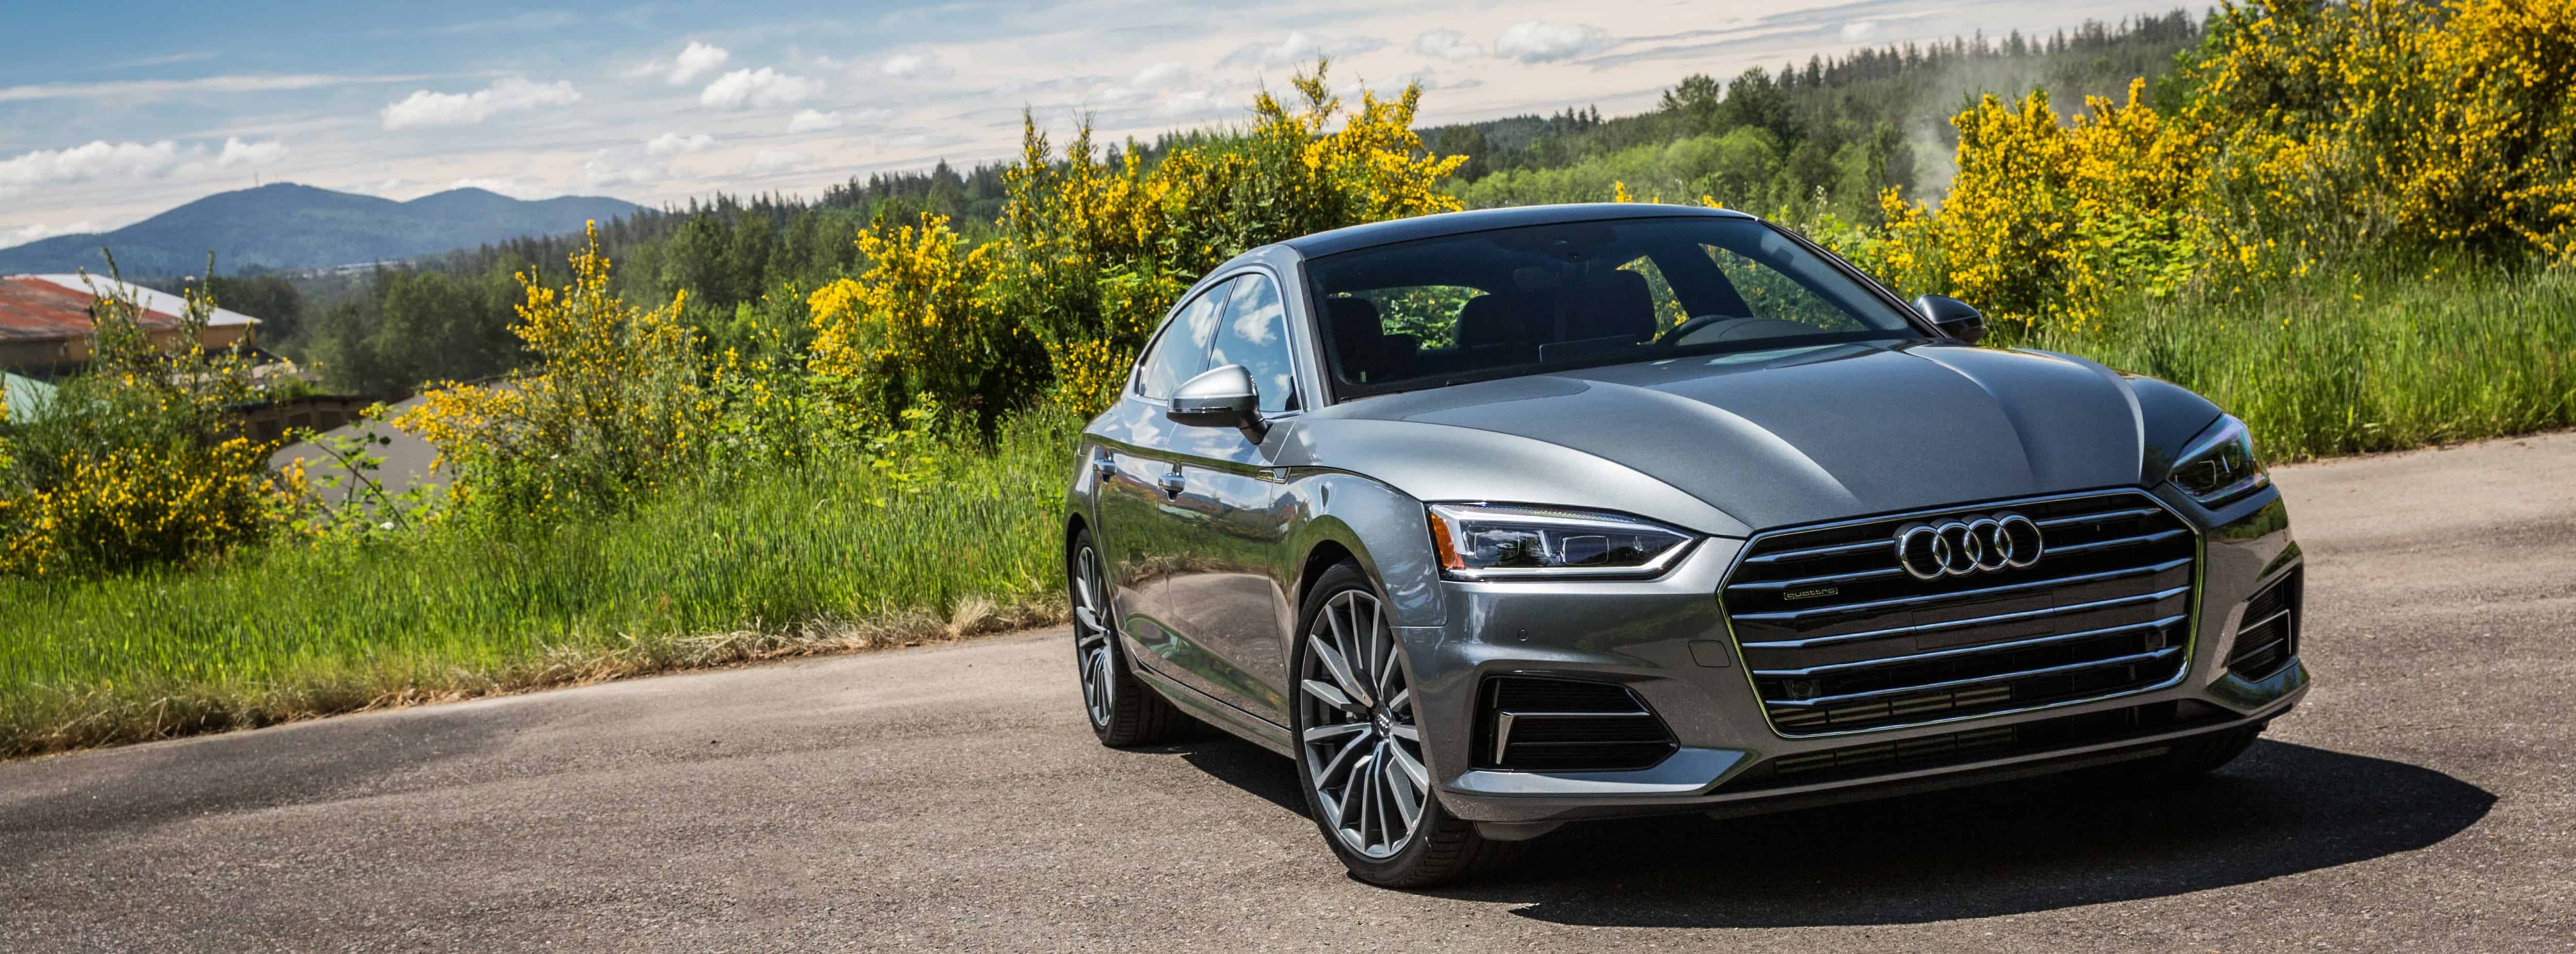 2018 Audi A5 Sportback Affordable Luxury Family Proof